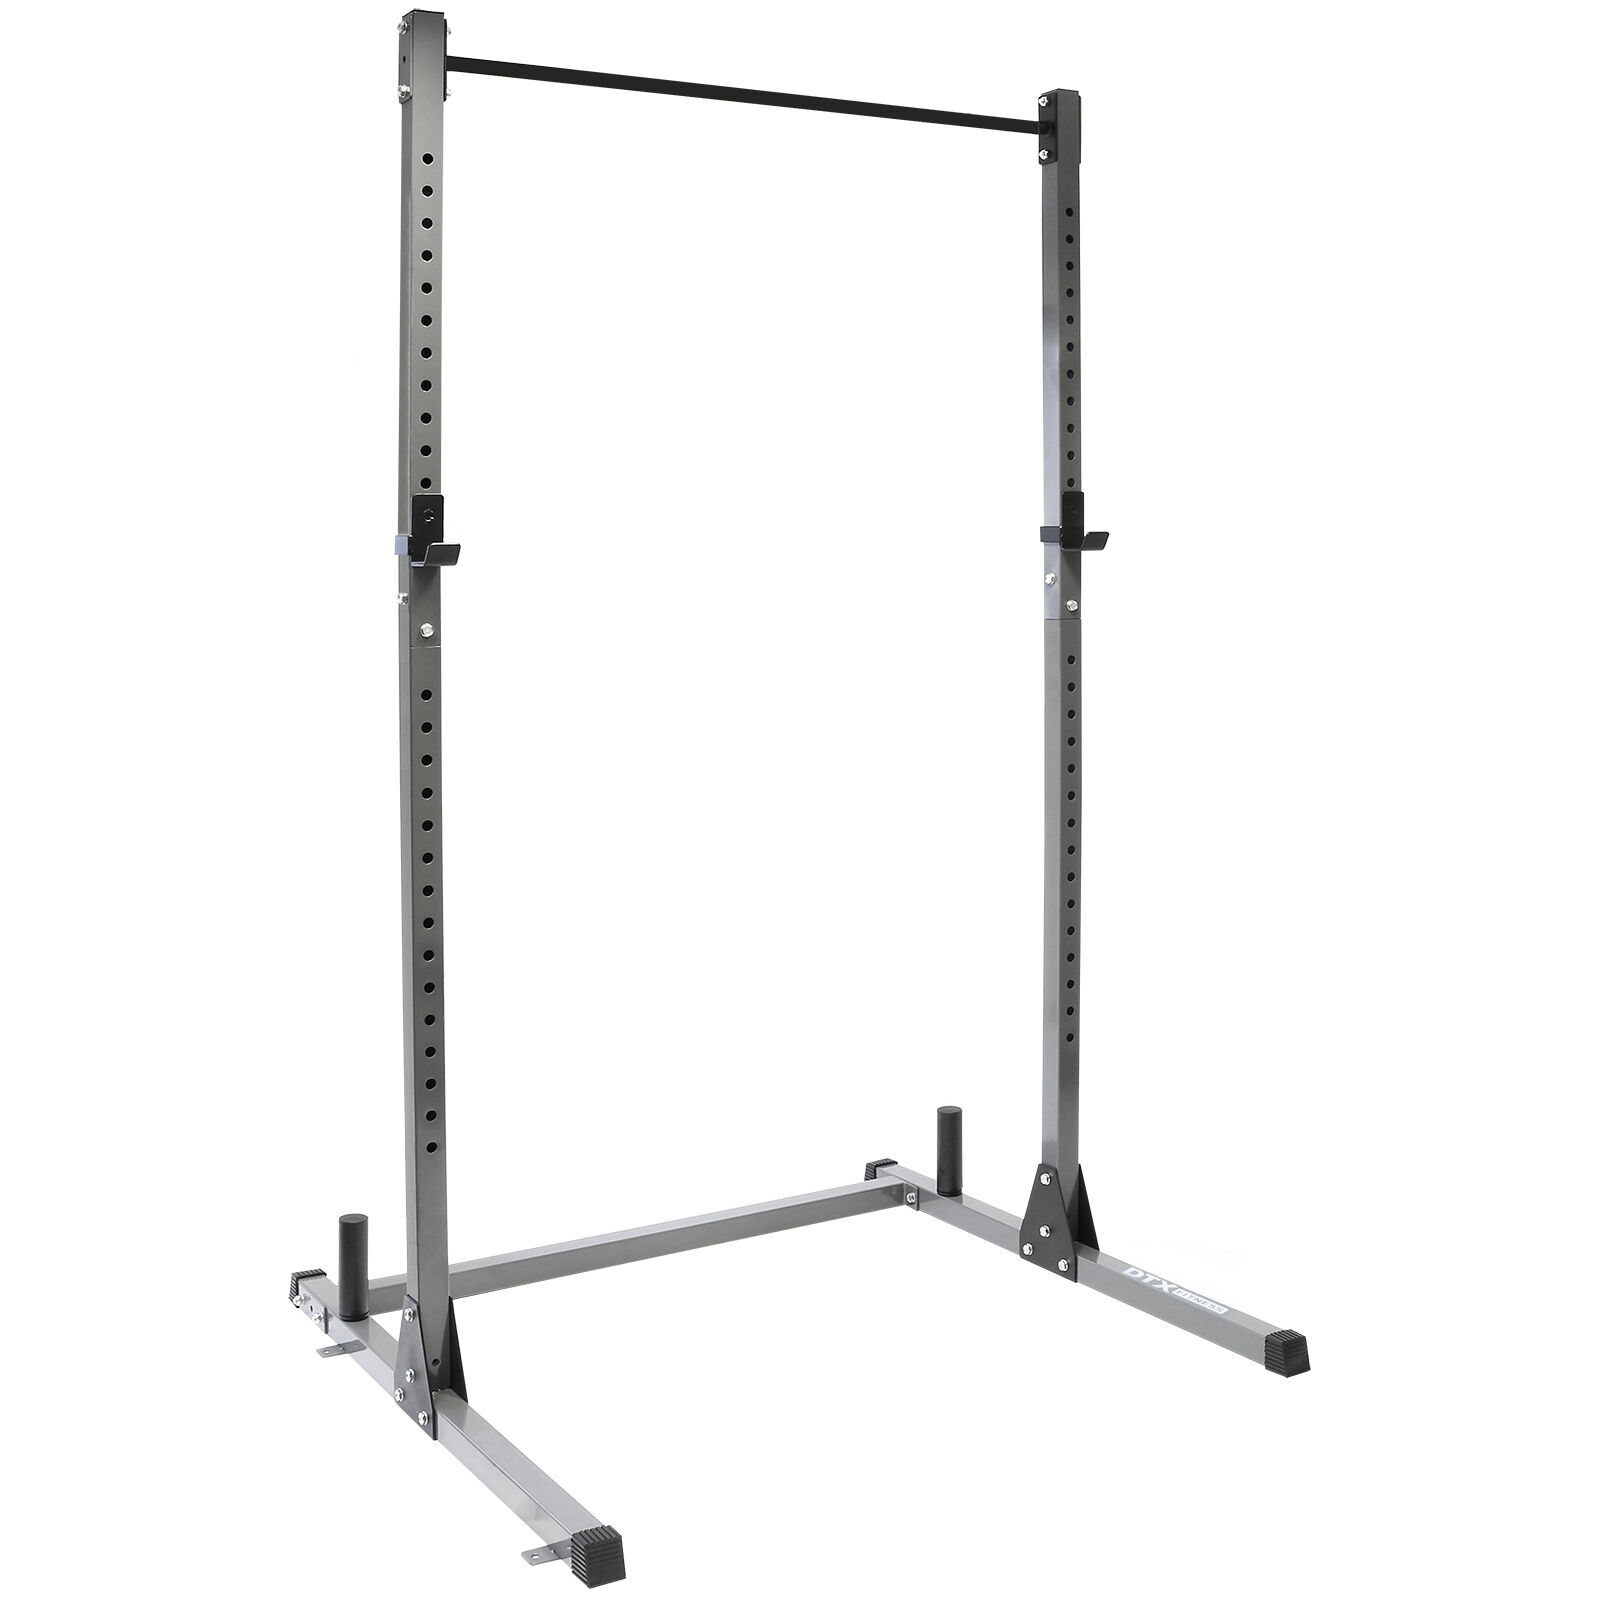 dtx fitness olympic squat rack power cage pull up bar multi gym weight lifting eur 90 20. Black Bedroom Furniture Sets. Home Design Ideas